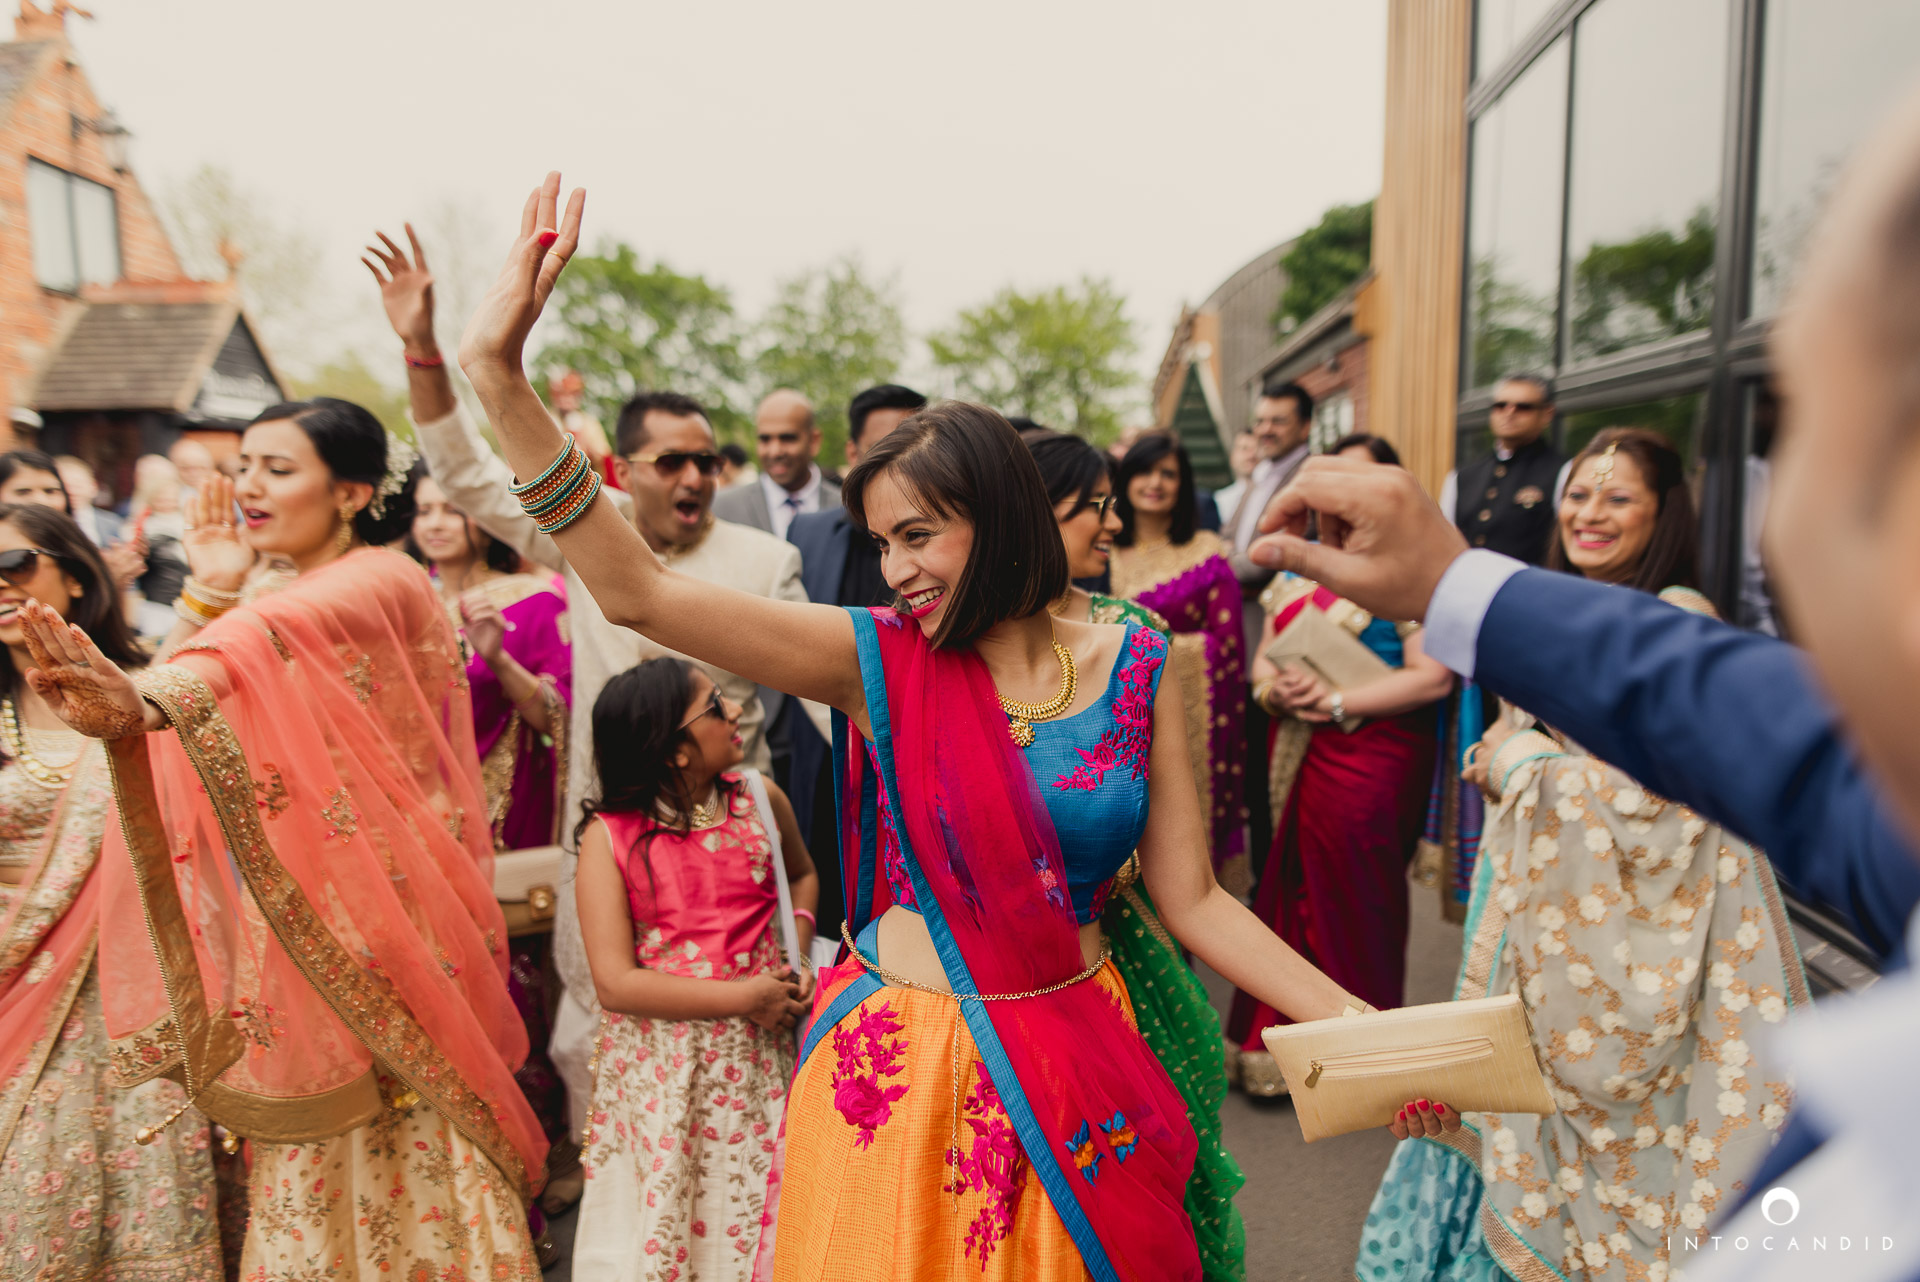 London_Wedding_Photographer_Intocandid_Photography_Ketan & Manasvi_23.JPG